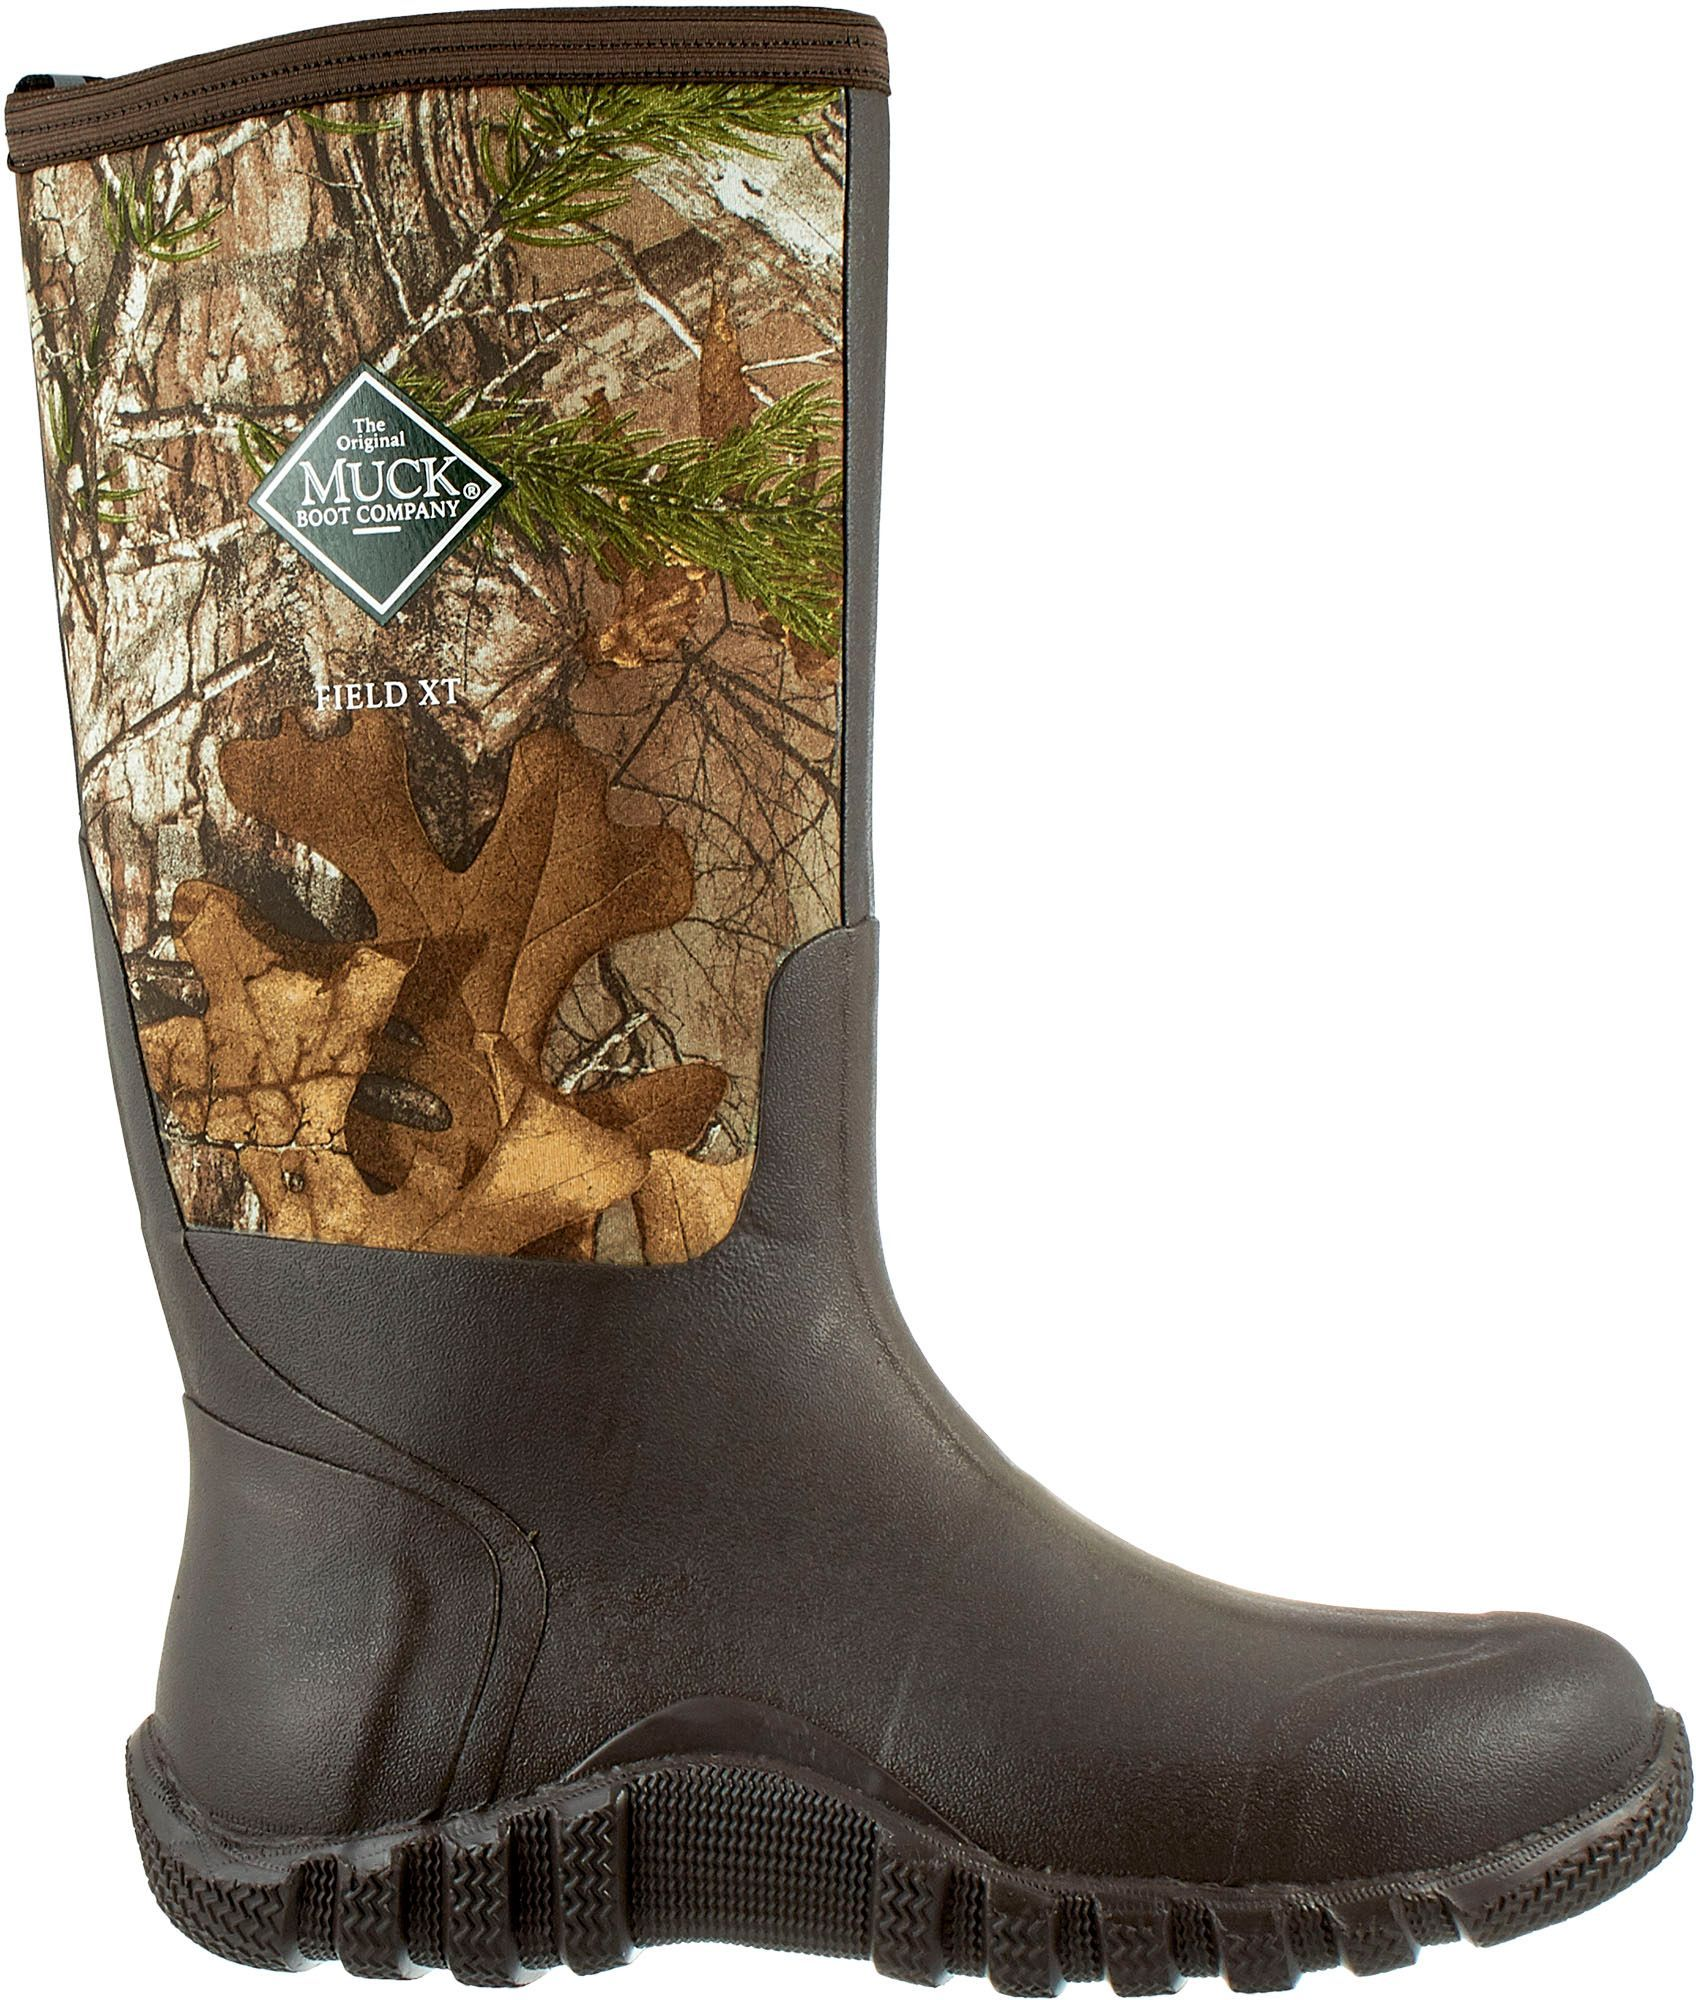 805c3654ab2c Muck Boots Men s Fieldblazer Realtree Xtra Rubber Hunting Boots